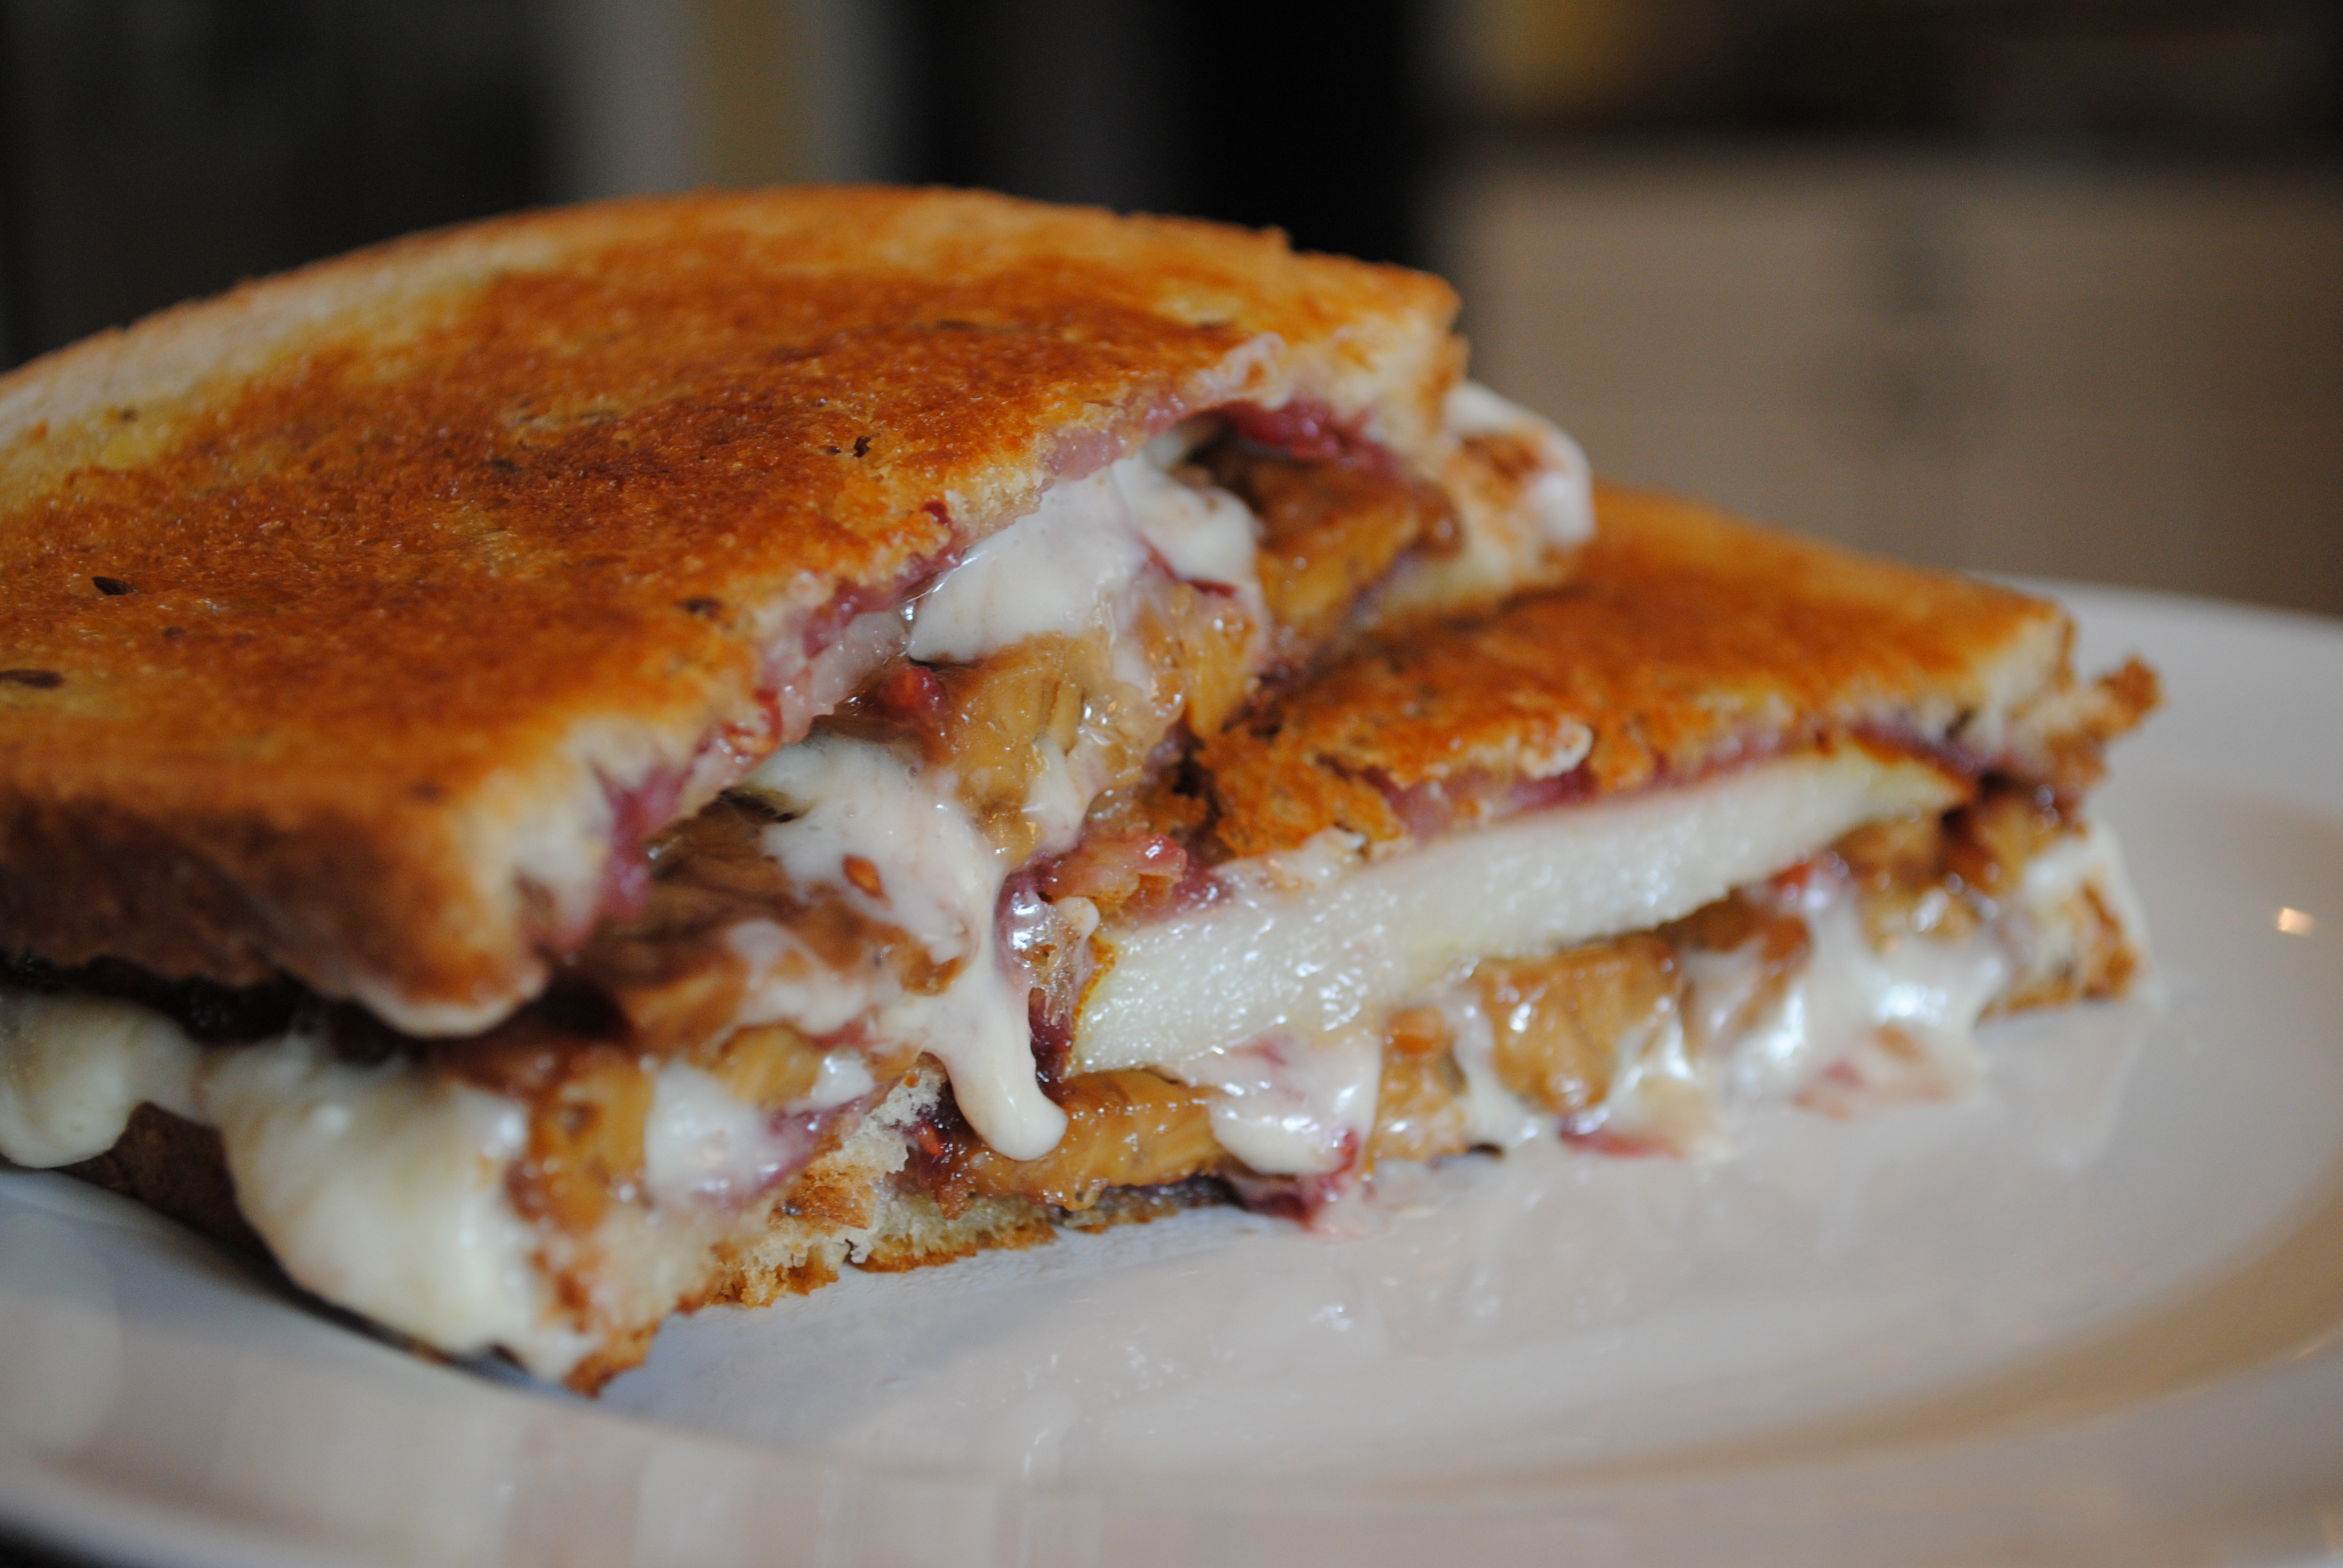 Vegan Pear, Tempeh Bacon, Raspberry Grilled Cheese Sandwich